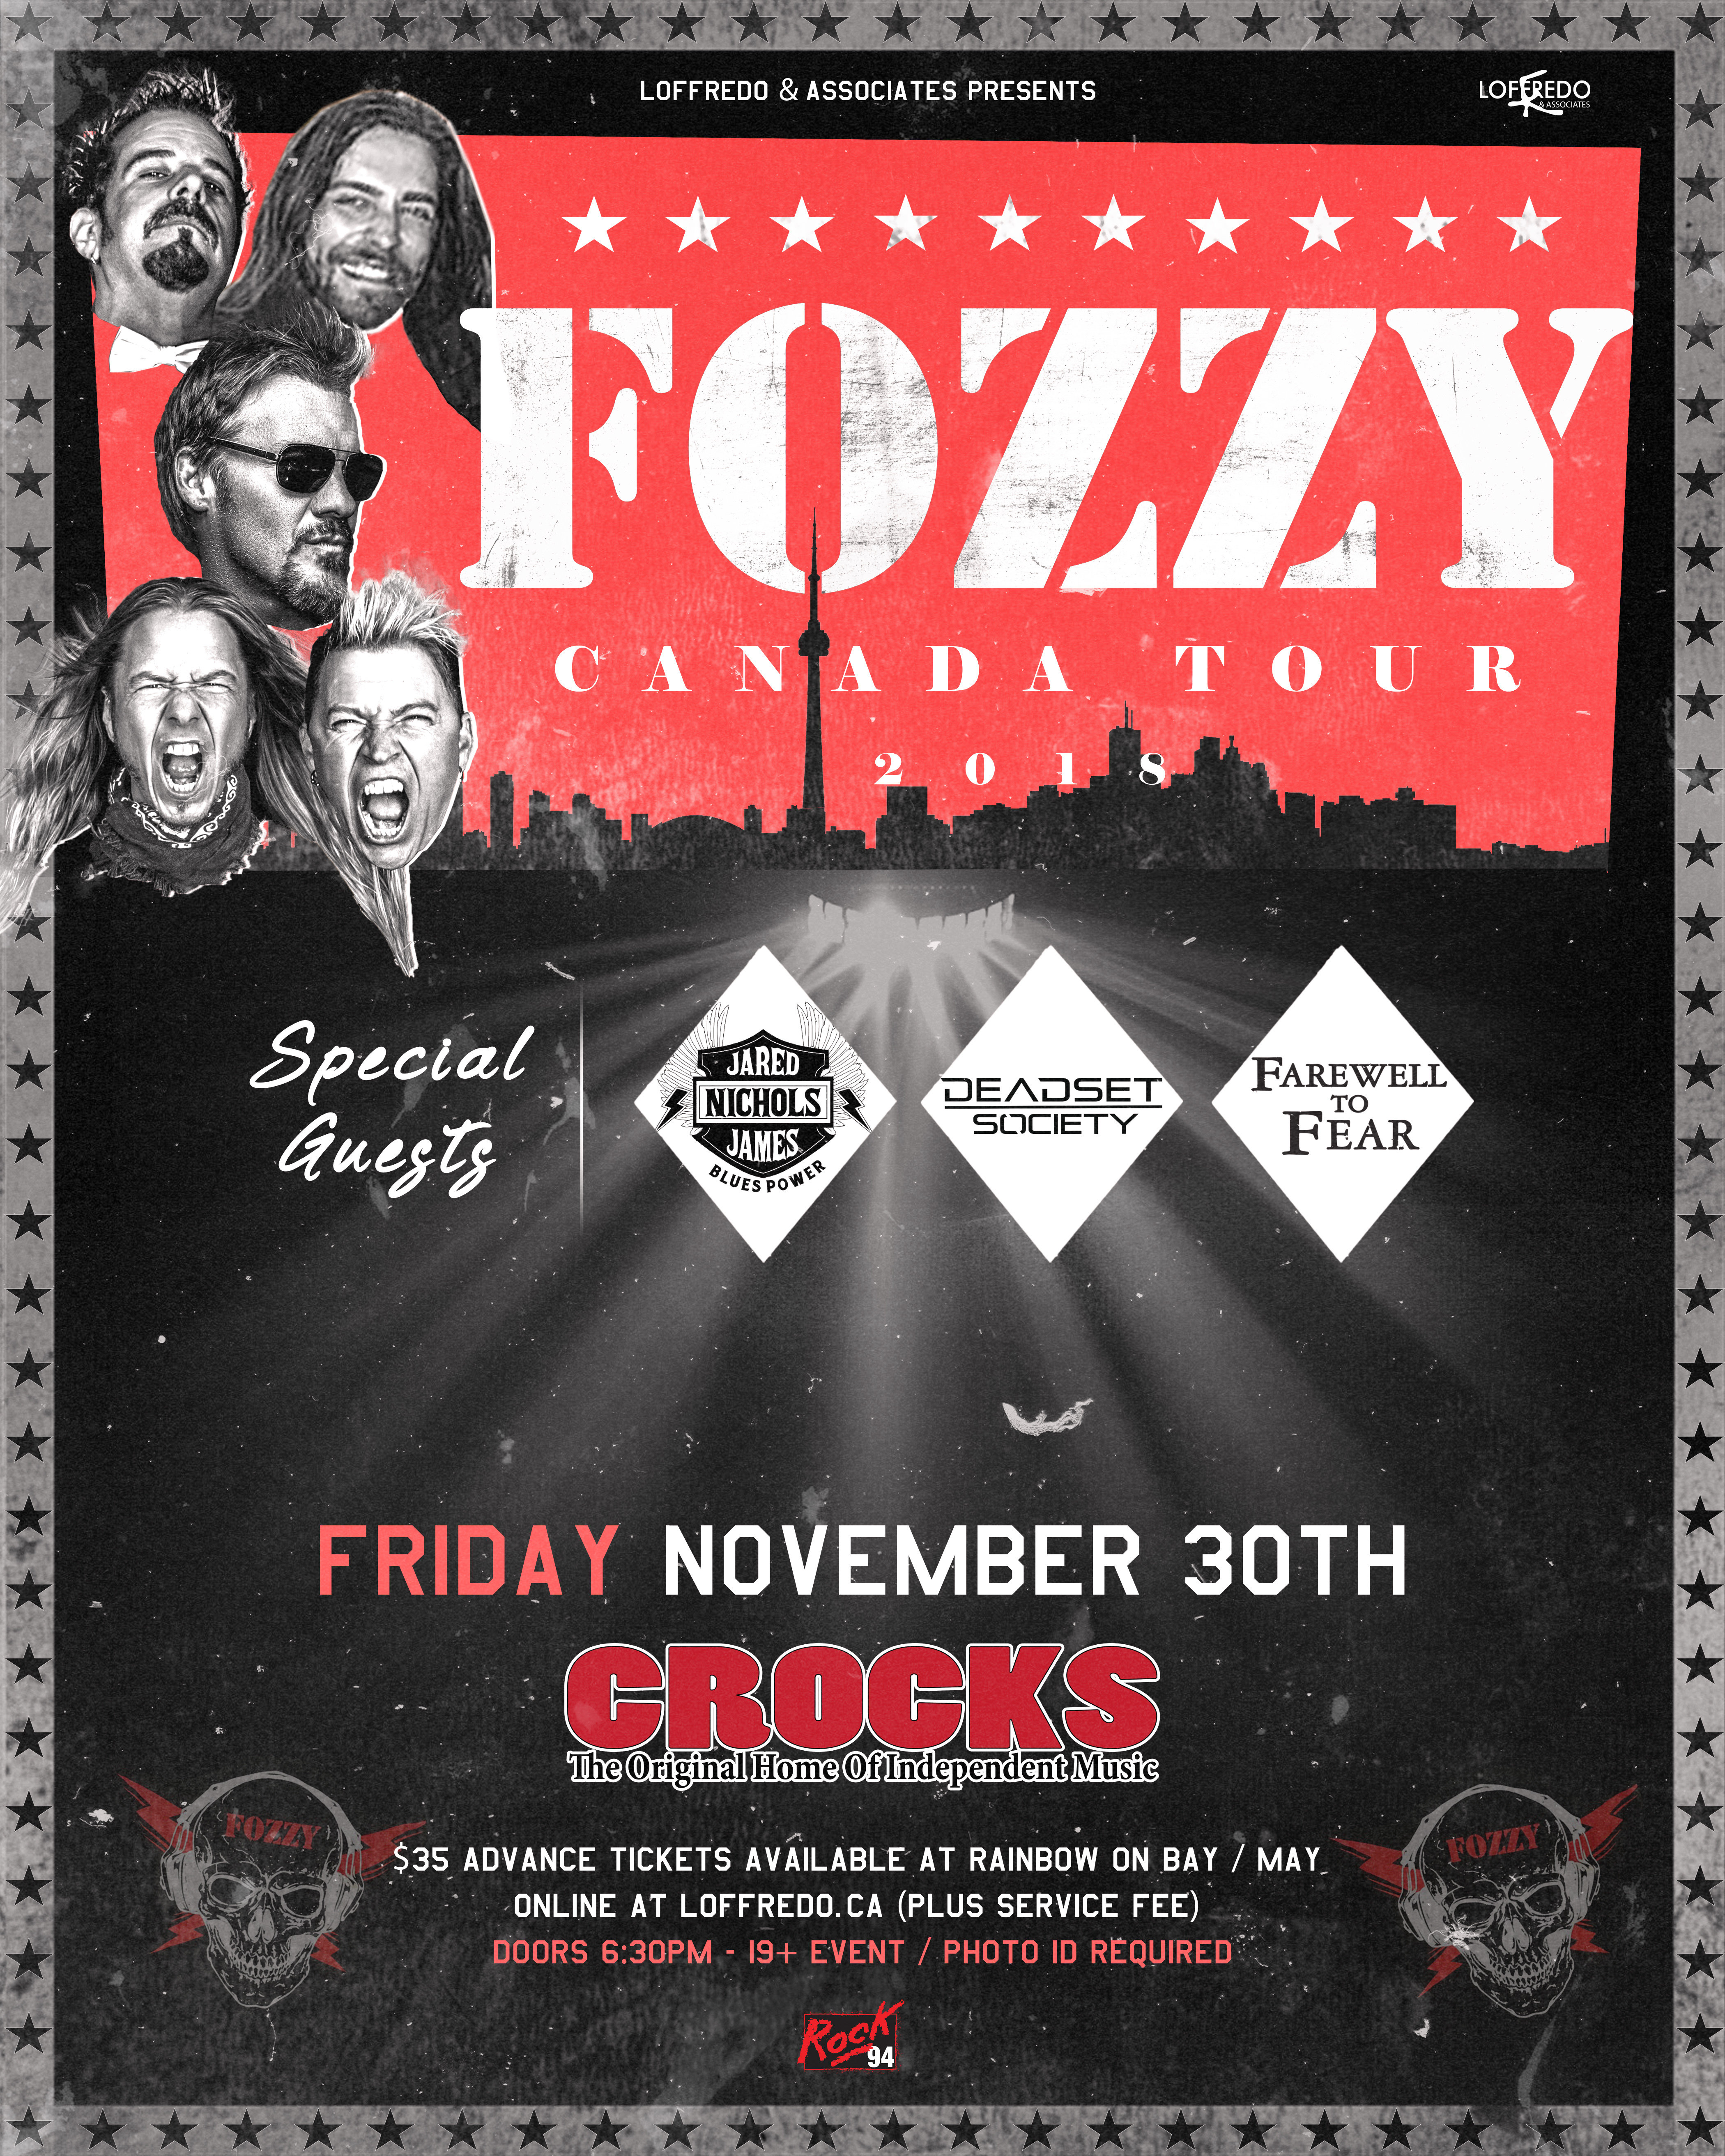 FOZZY - Friday November 30th at Crocks 00278